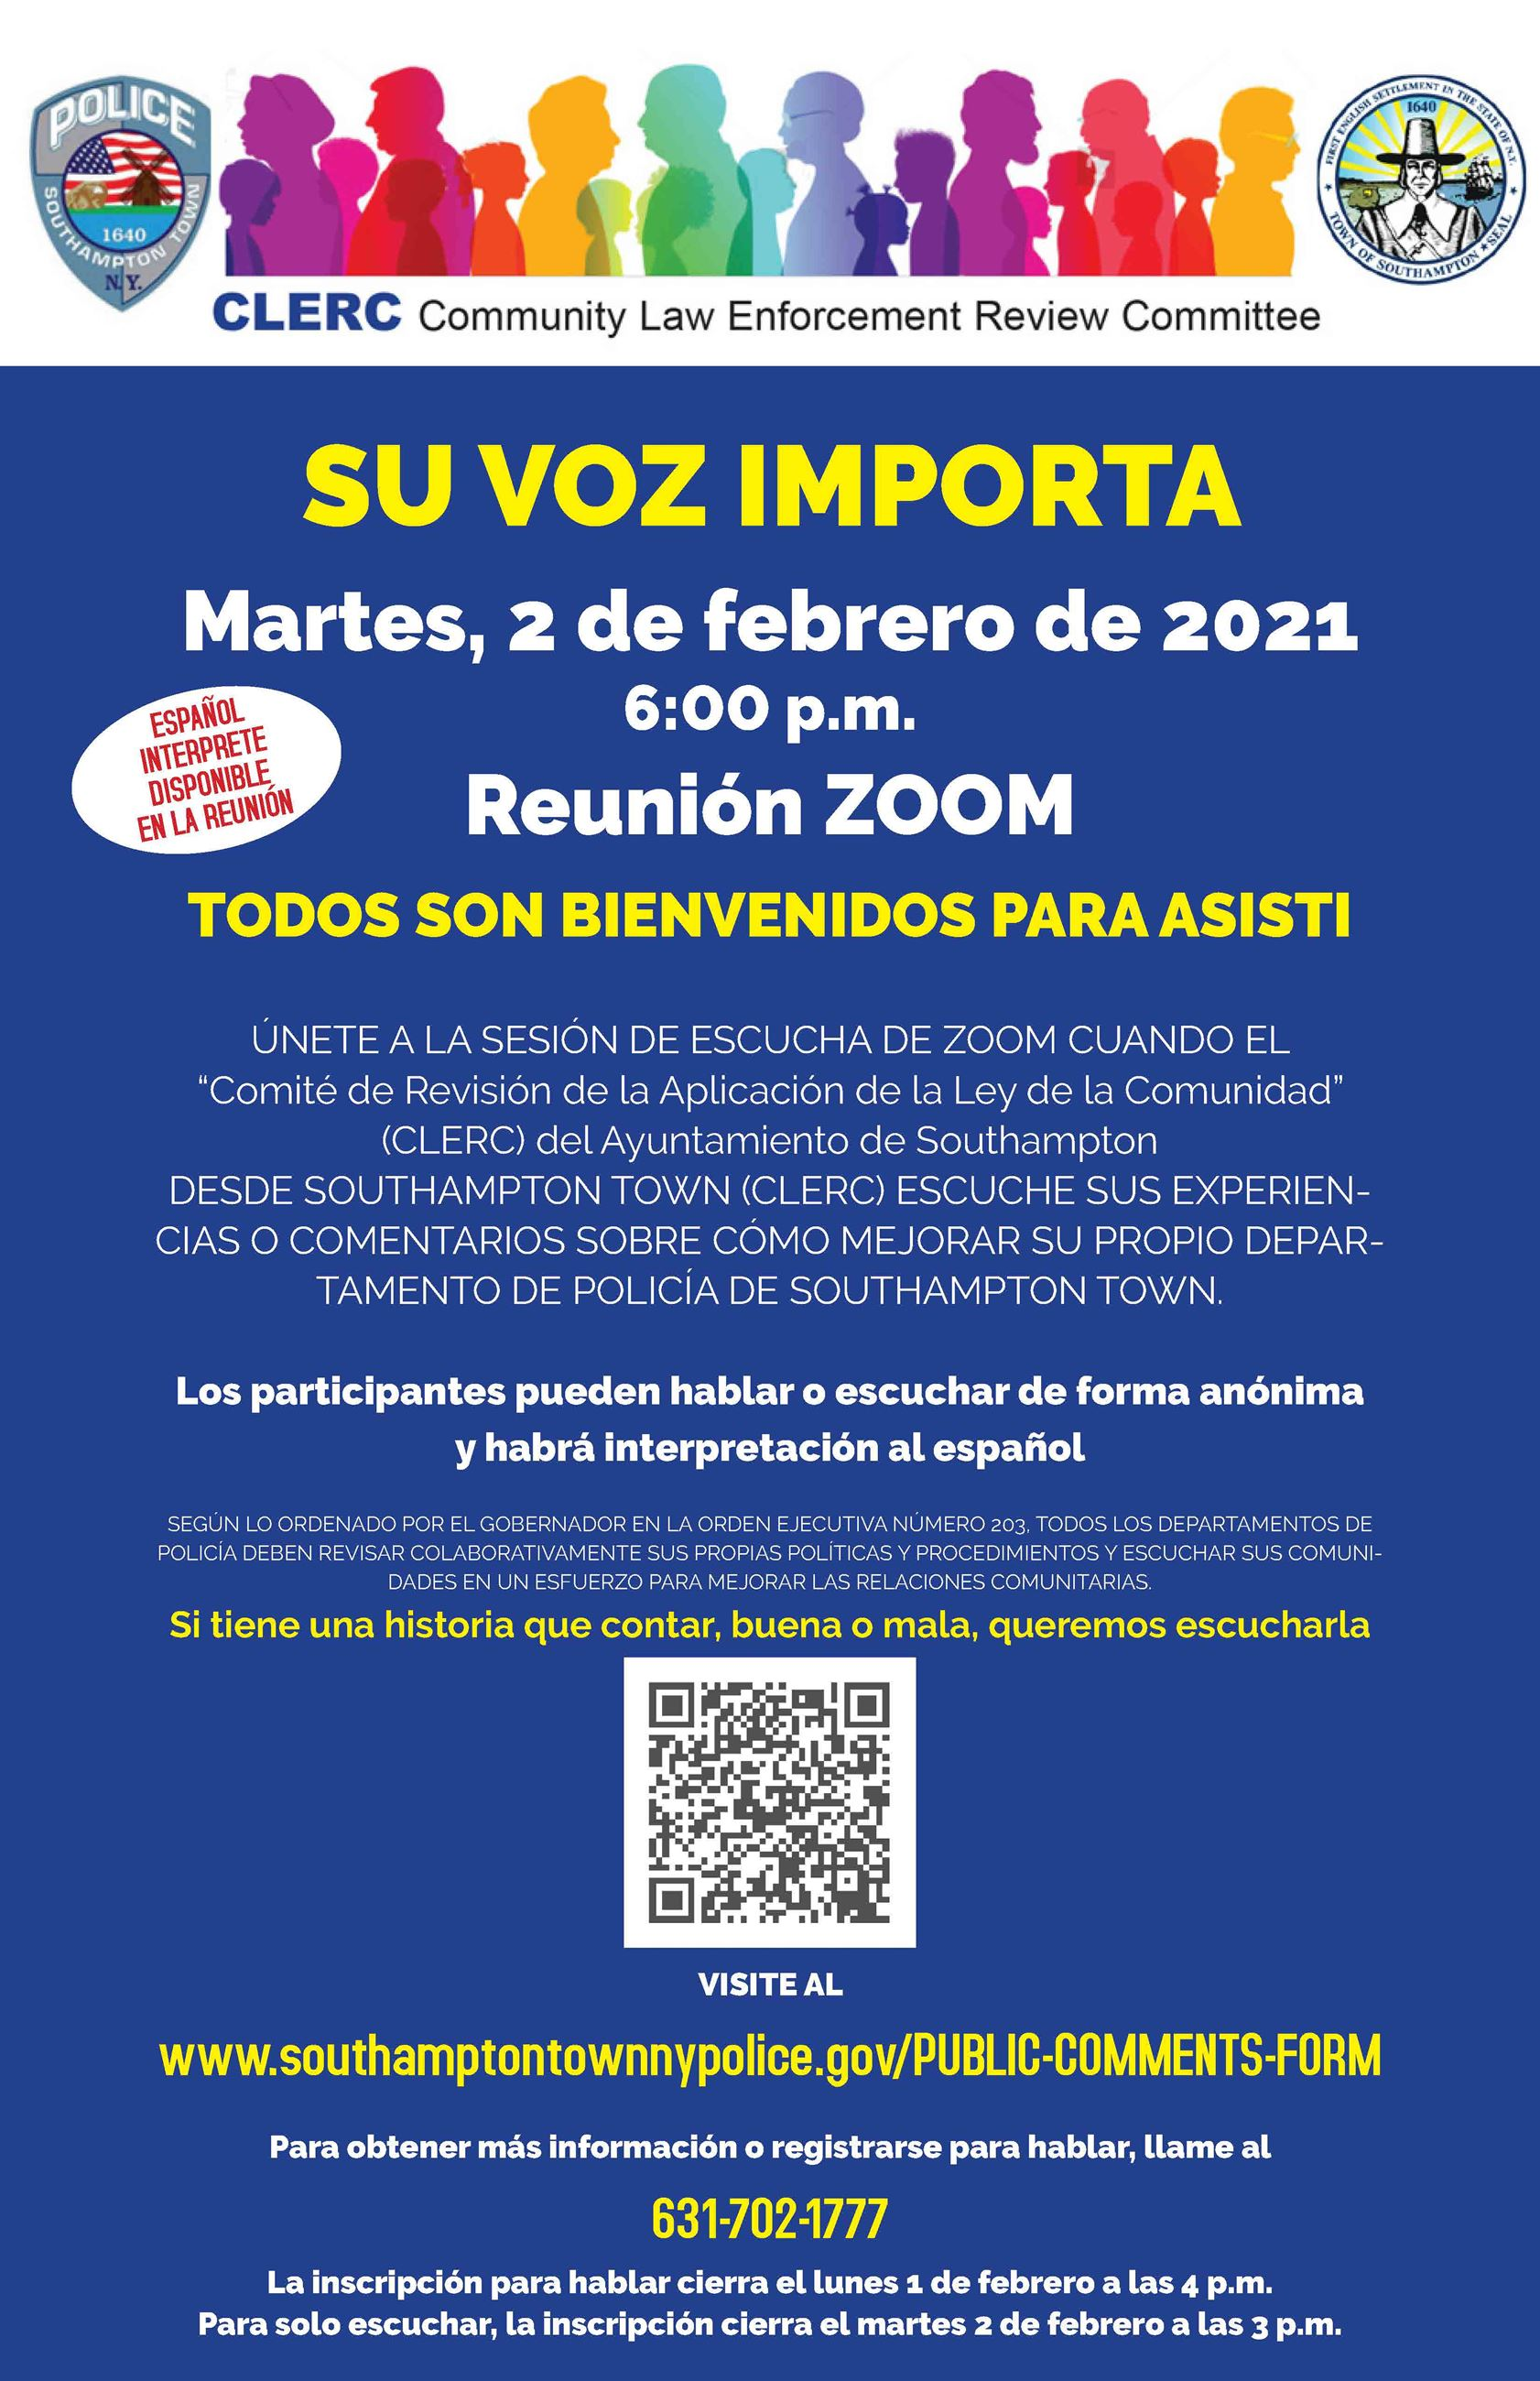 CLERC MEETING POSTER 02-02-2021_SPANISH